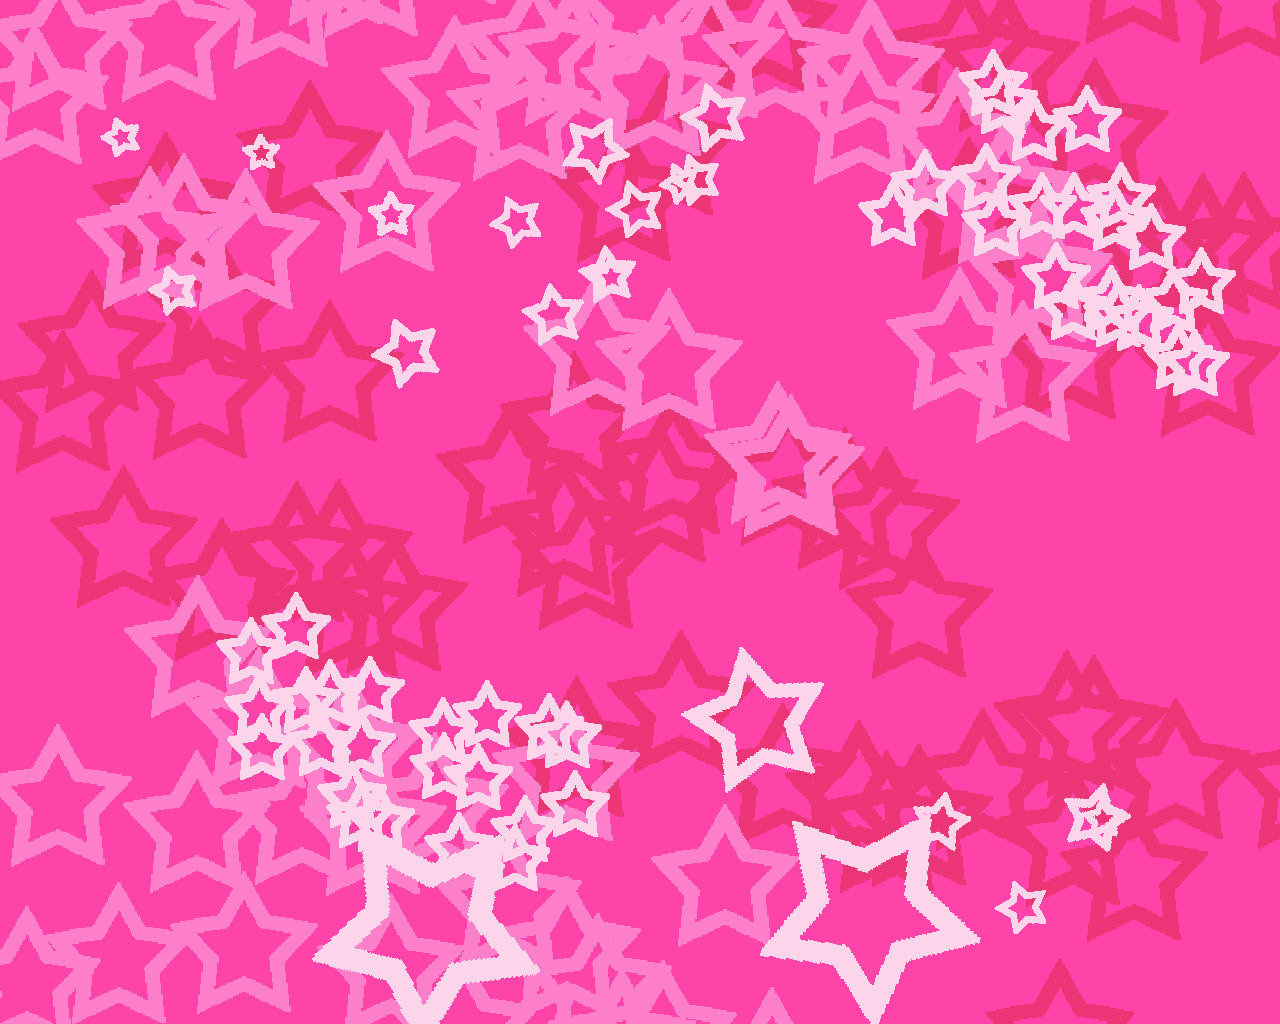 Description Pink HD Wallpaper is a hi res Wallpaper for pc desktops 1280x1024